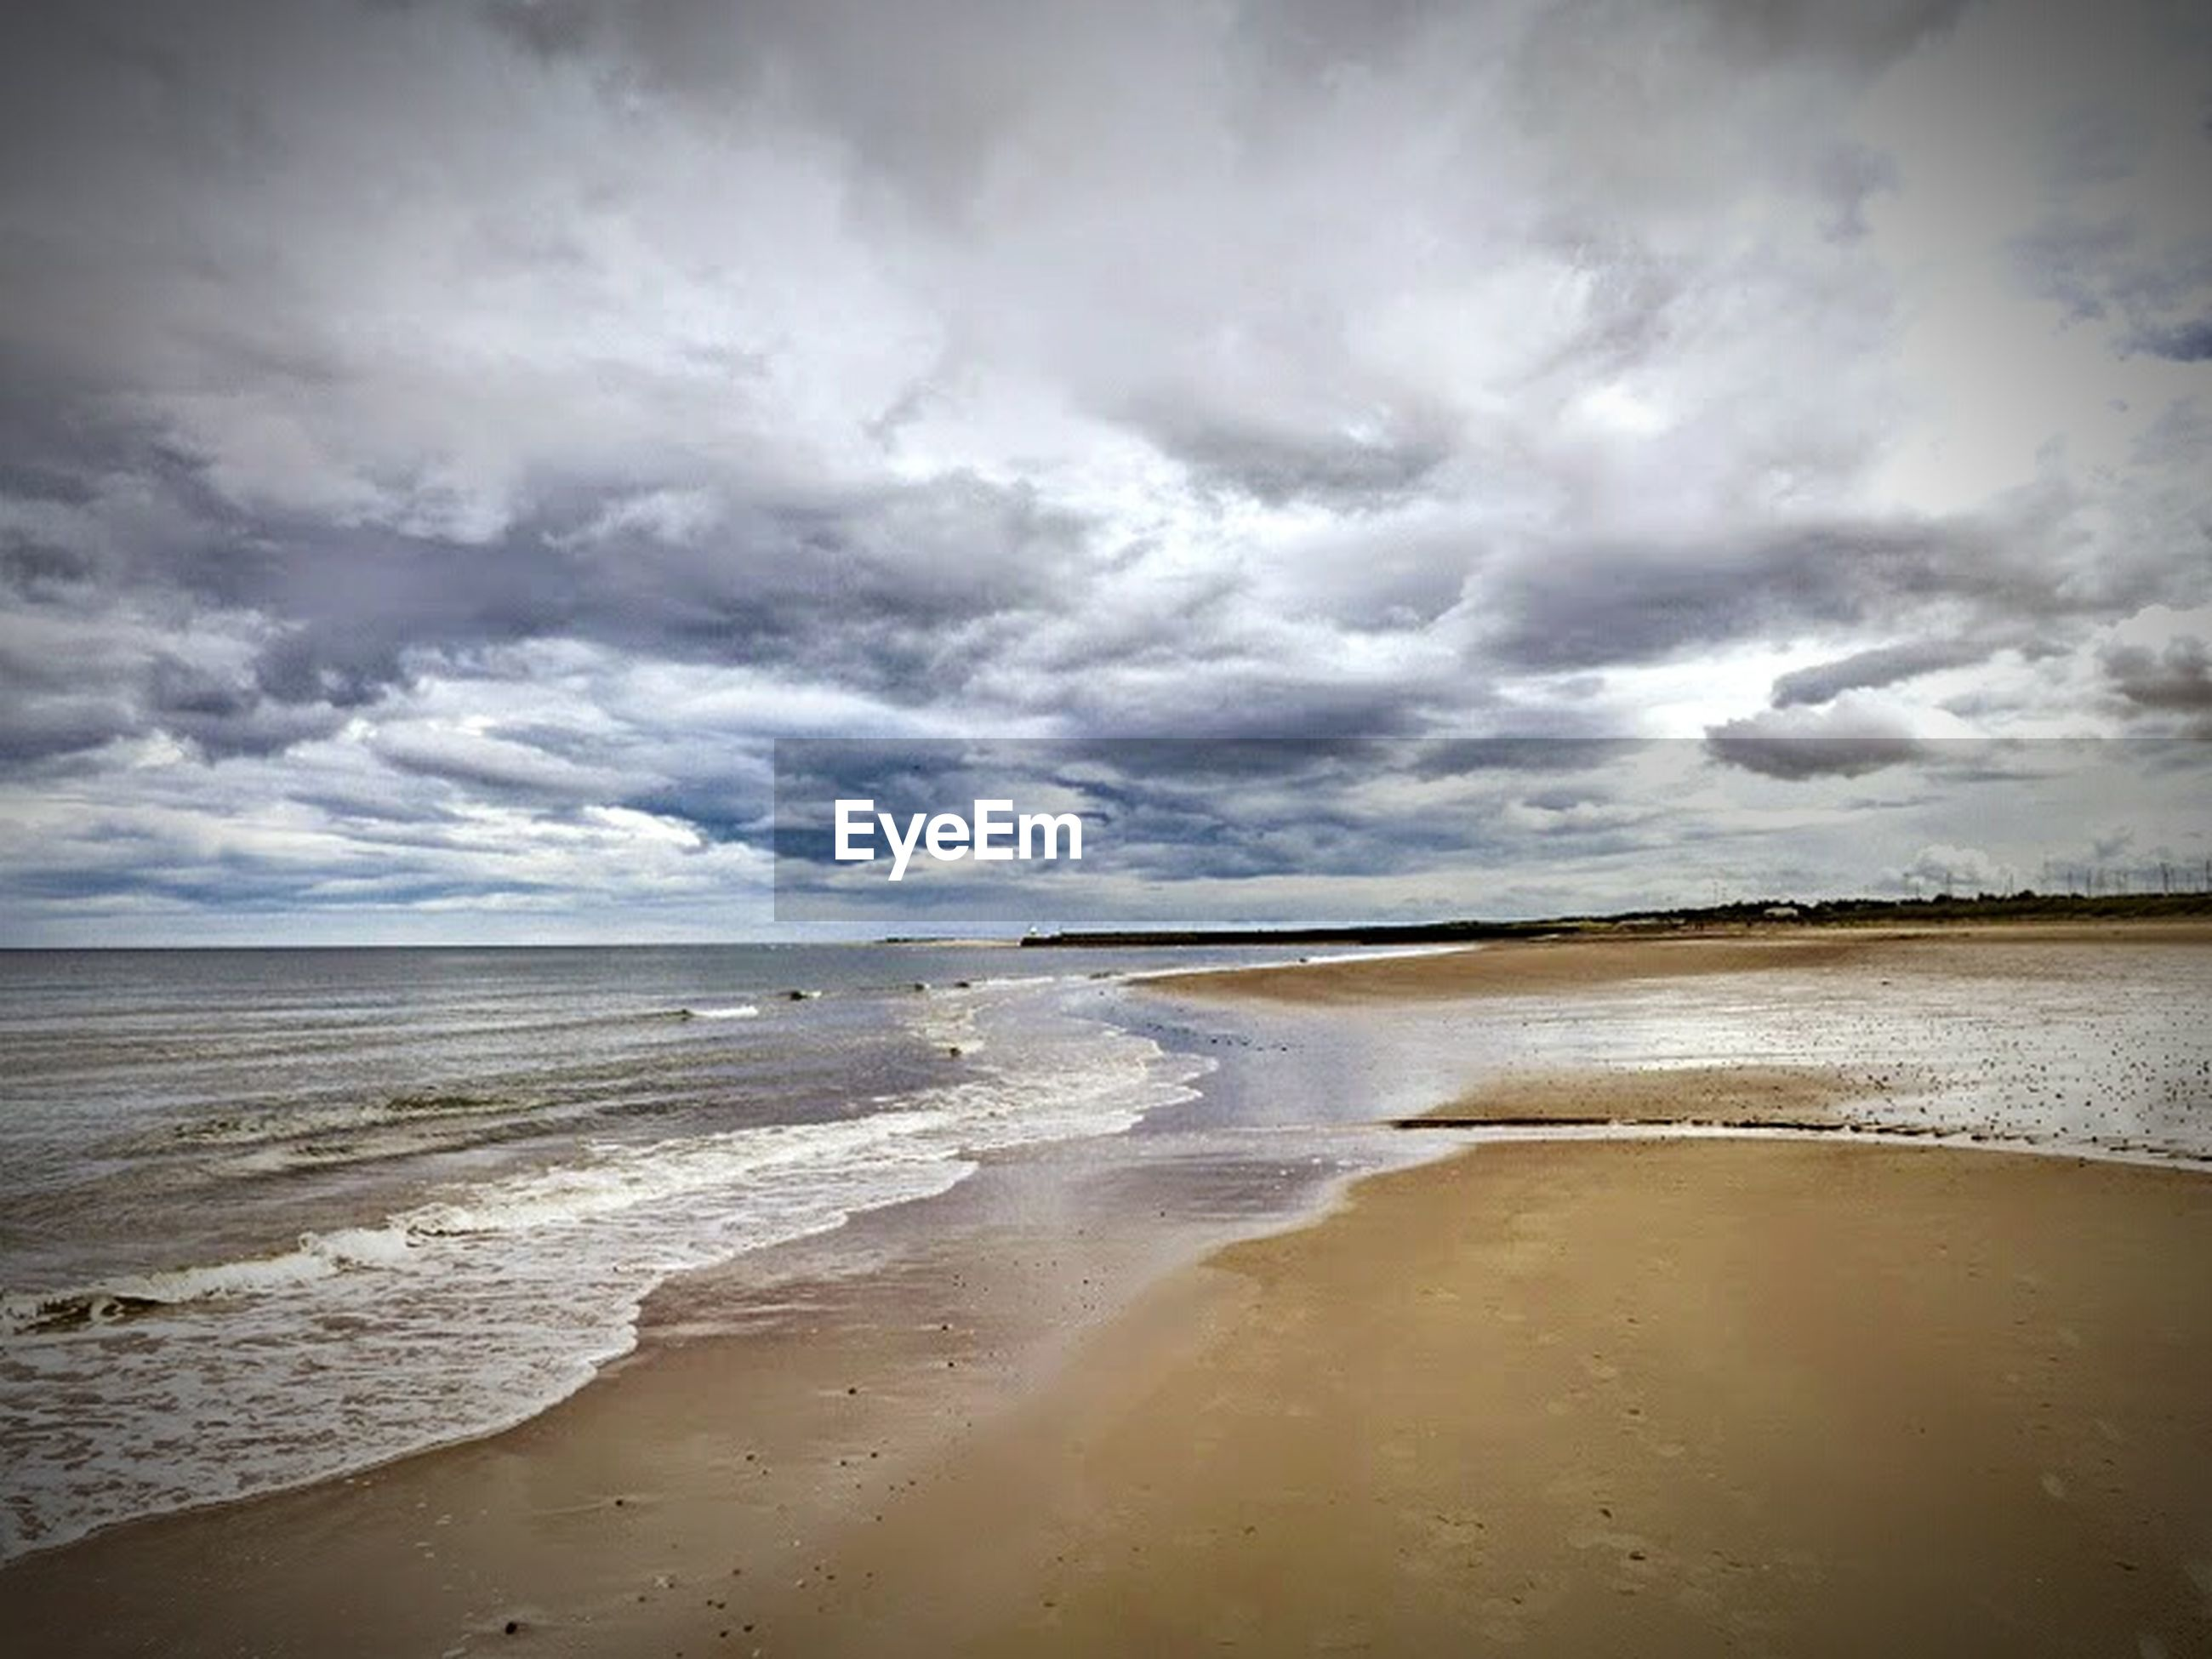 beach, sea, water, horizon over water, shore, sand, sky, tranquil scene, tranquility, scenics, beauty in nature, cloud - sky, wave, nature, coastline, idyllic, cloud, cloudy, surf, calm